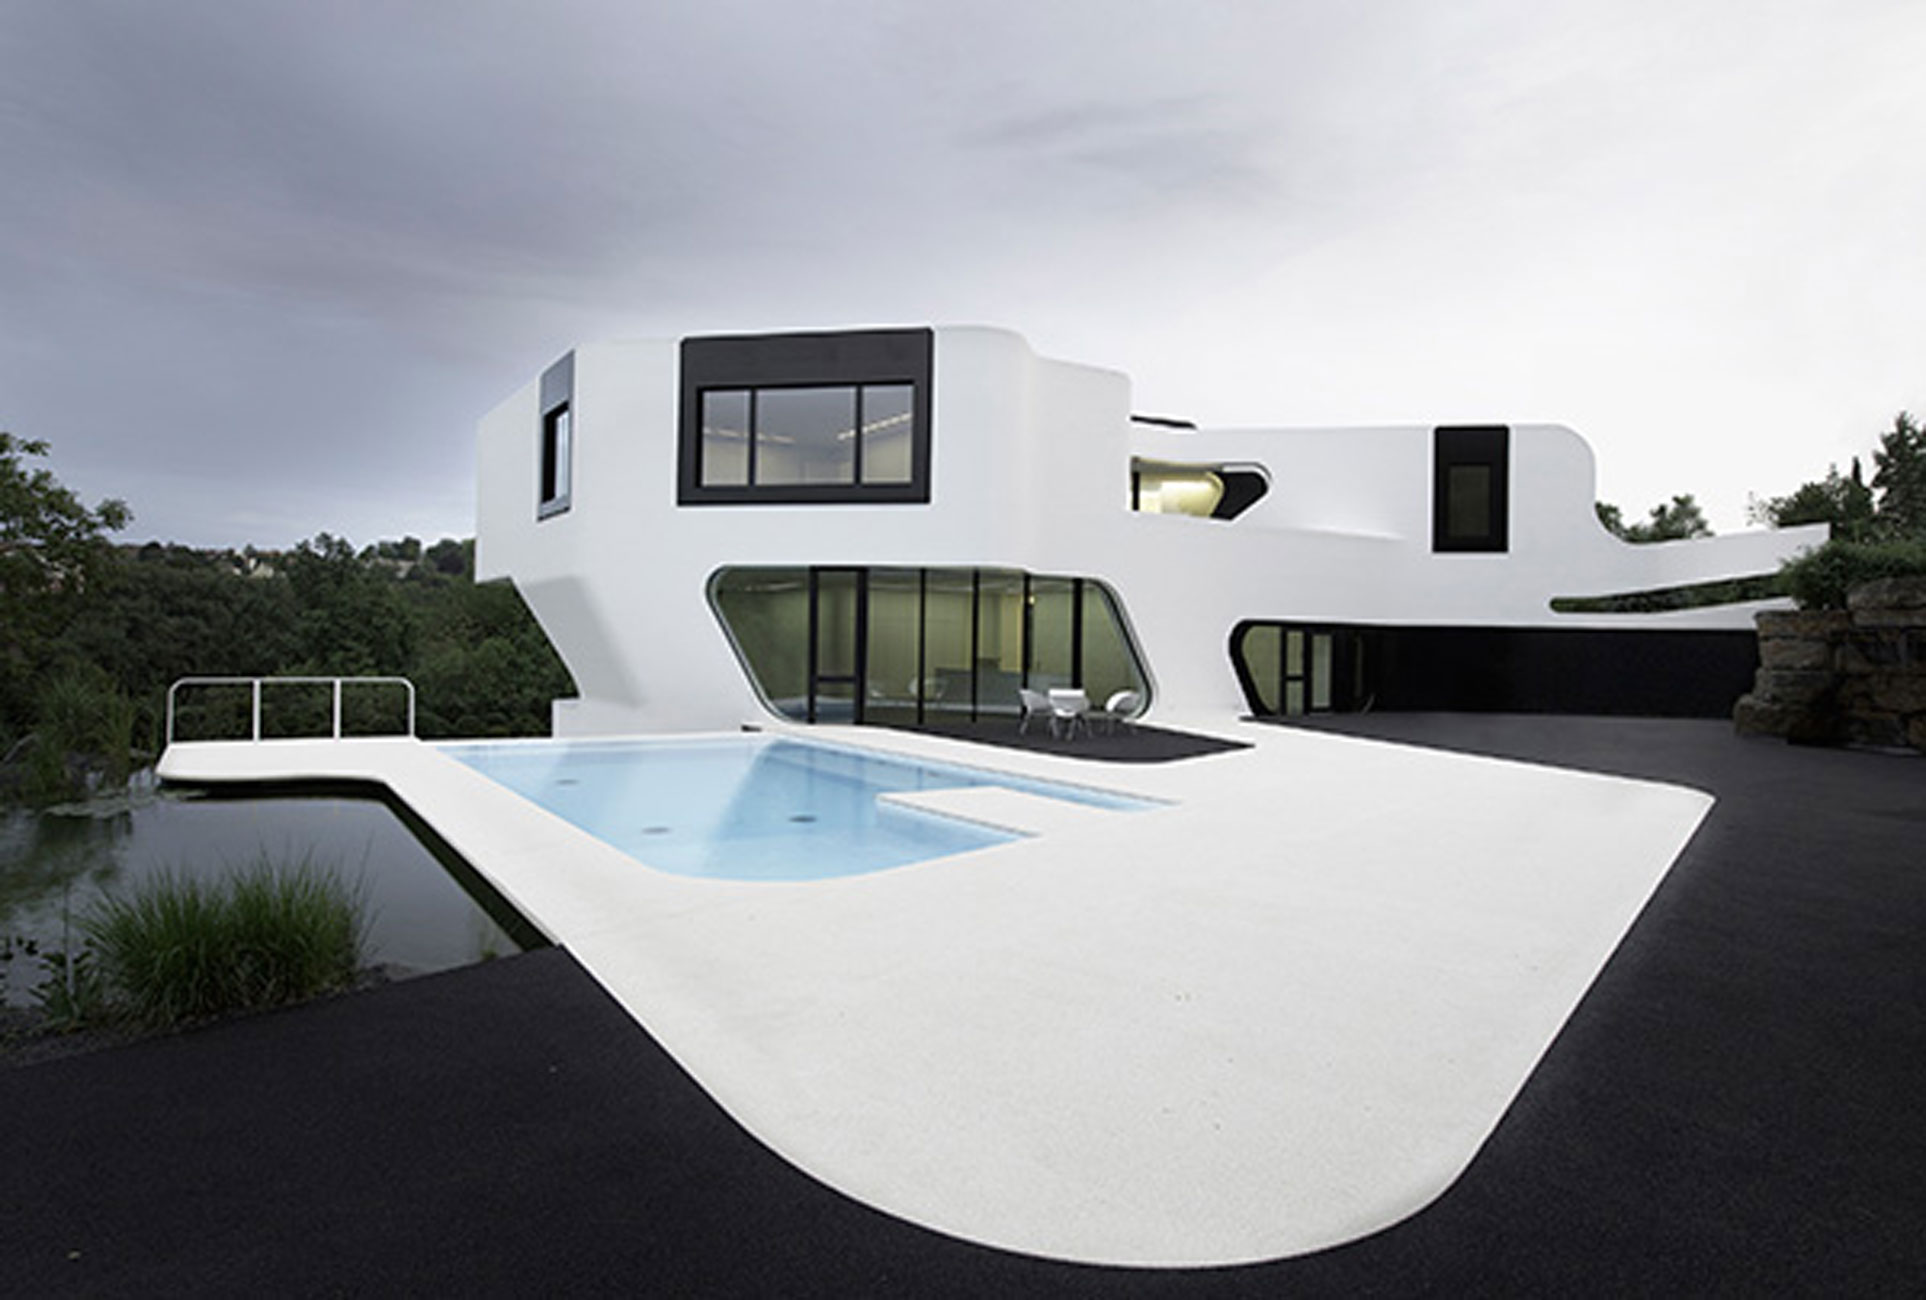 Futuristik Design Contemporary Residence With Futuristic Design In Germany Pool